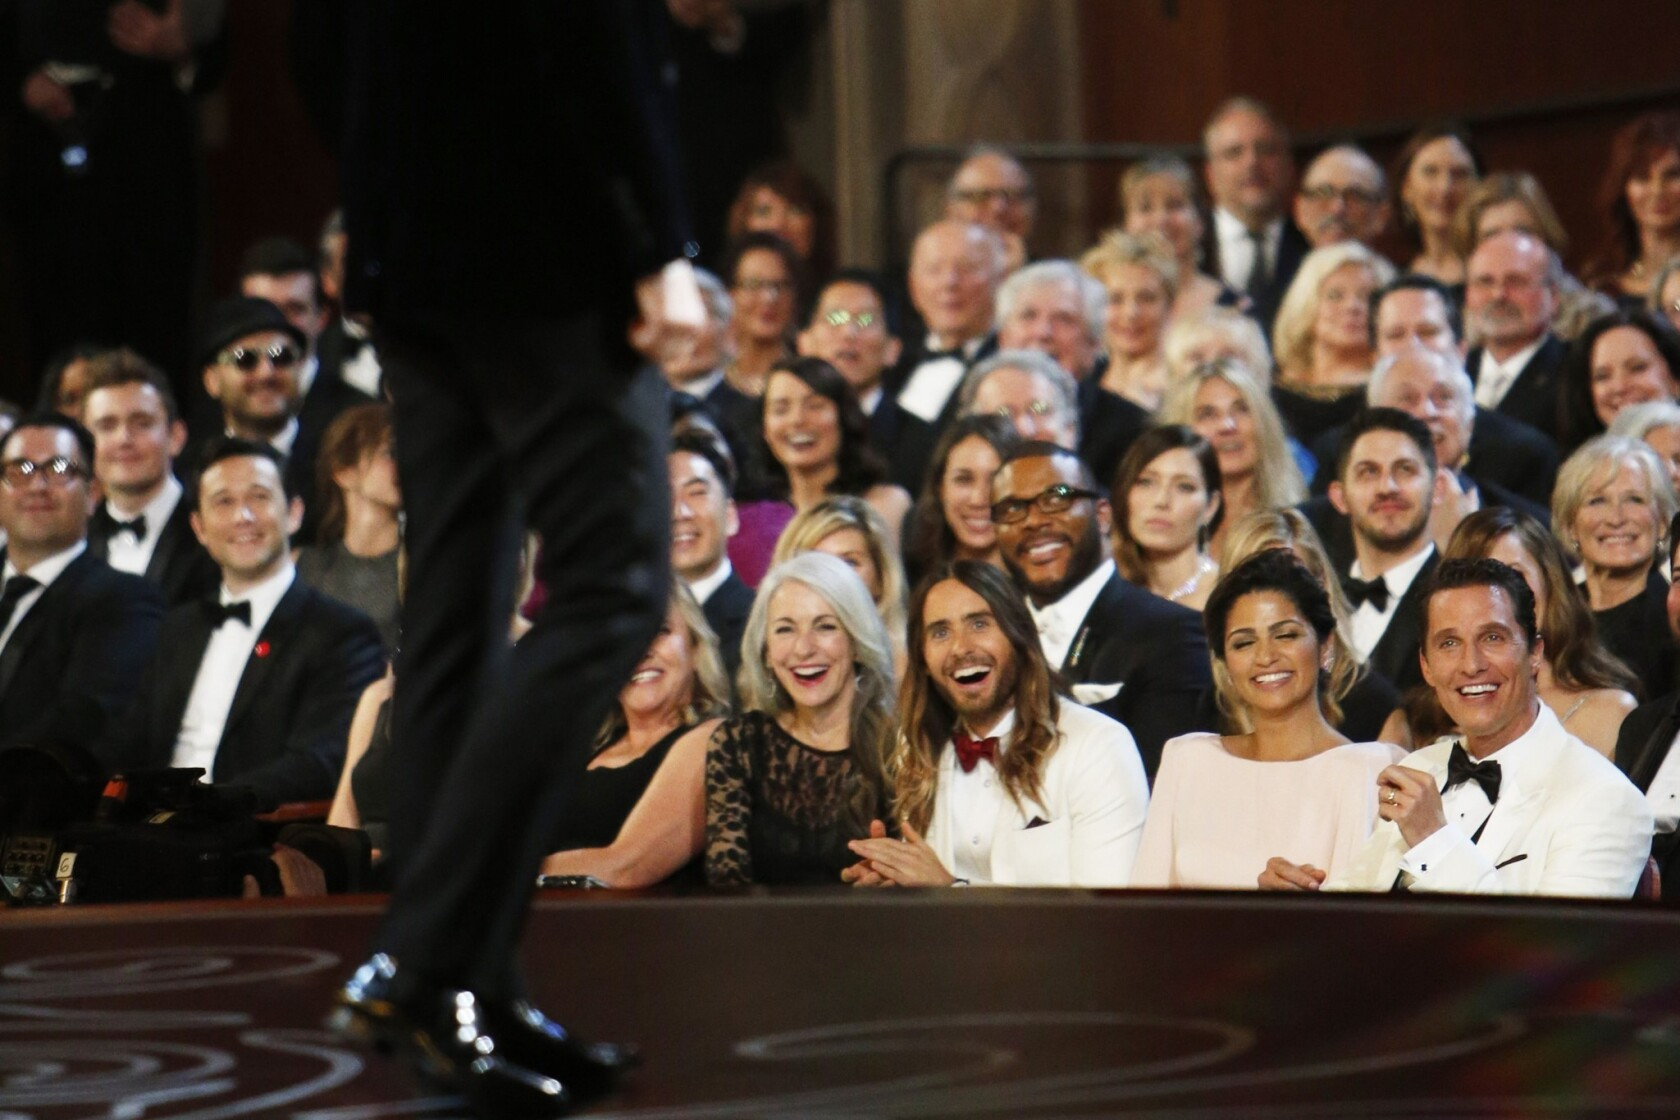 Oscars 2014: Moments from Academy Awards you didn't see on